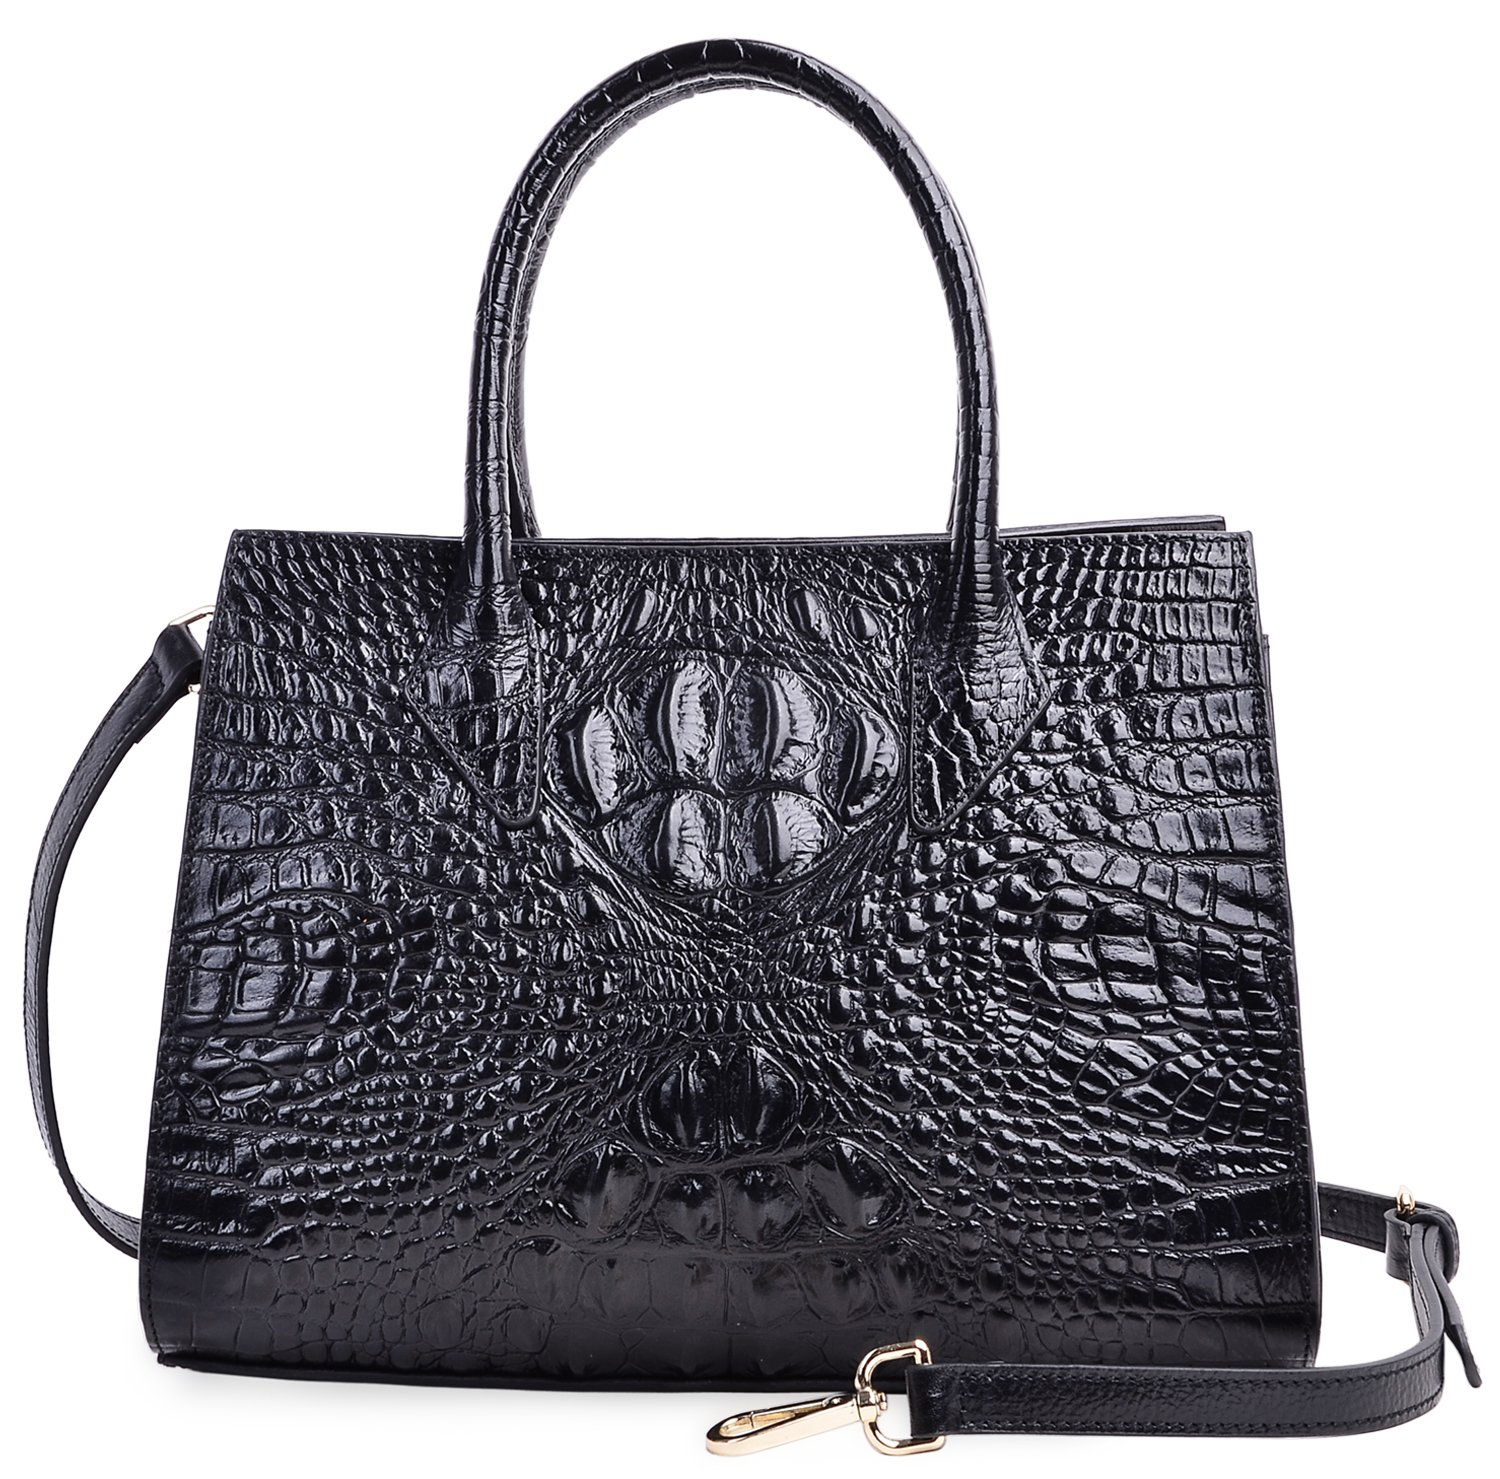 PIJUSHI Women Handbags Top Handle Satchel Leather Tote Bags for Ladies 8890(One Size, Black Croco)